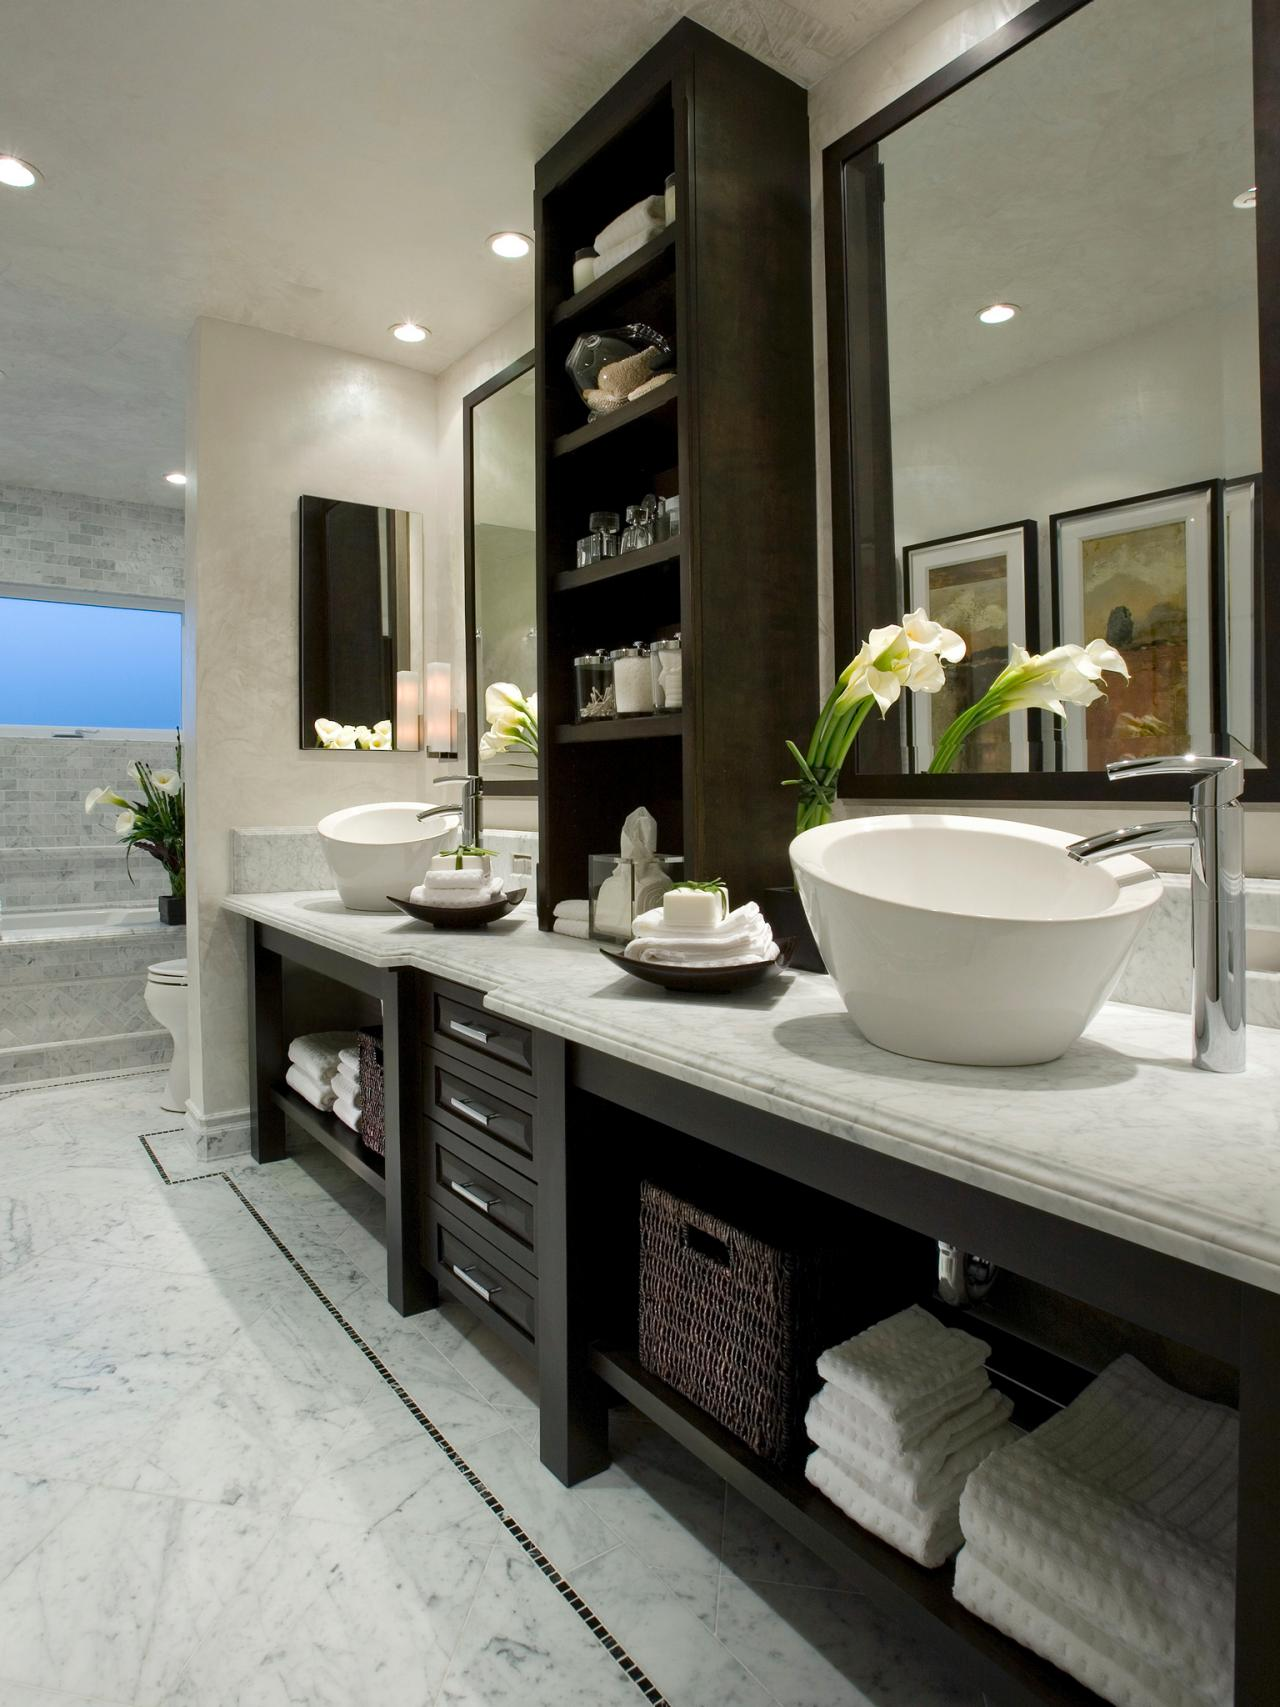 Nicole miller home decor always up to date and - Beautiful modern bathroom designs ...